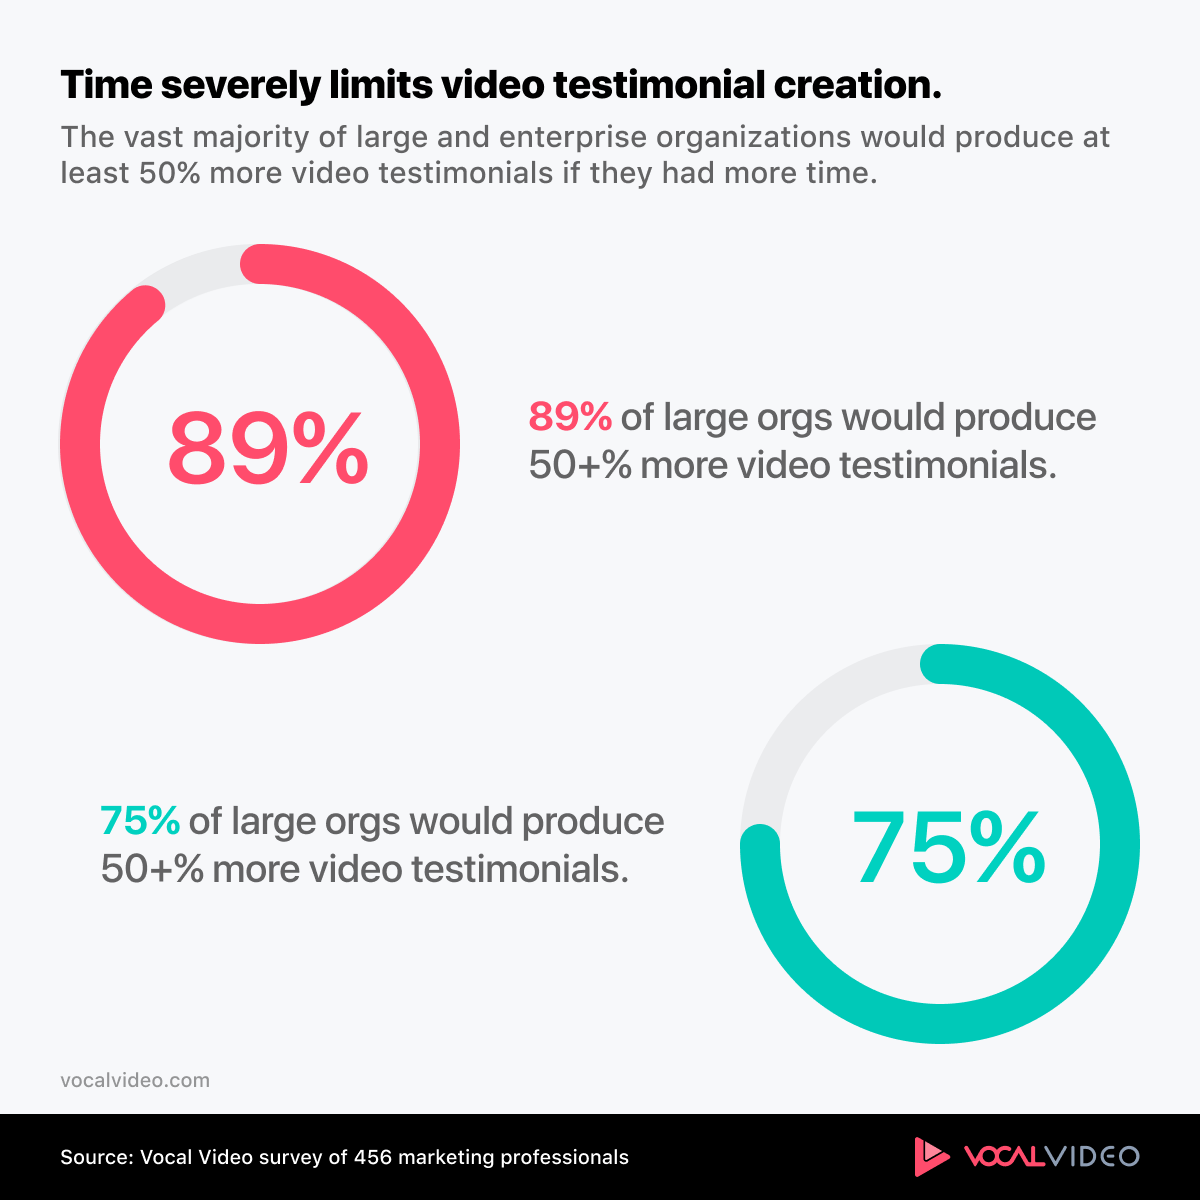 Two charts showing that large and enterprise organizations would produce significantly more video testimonials with more time.